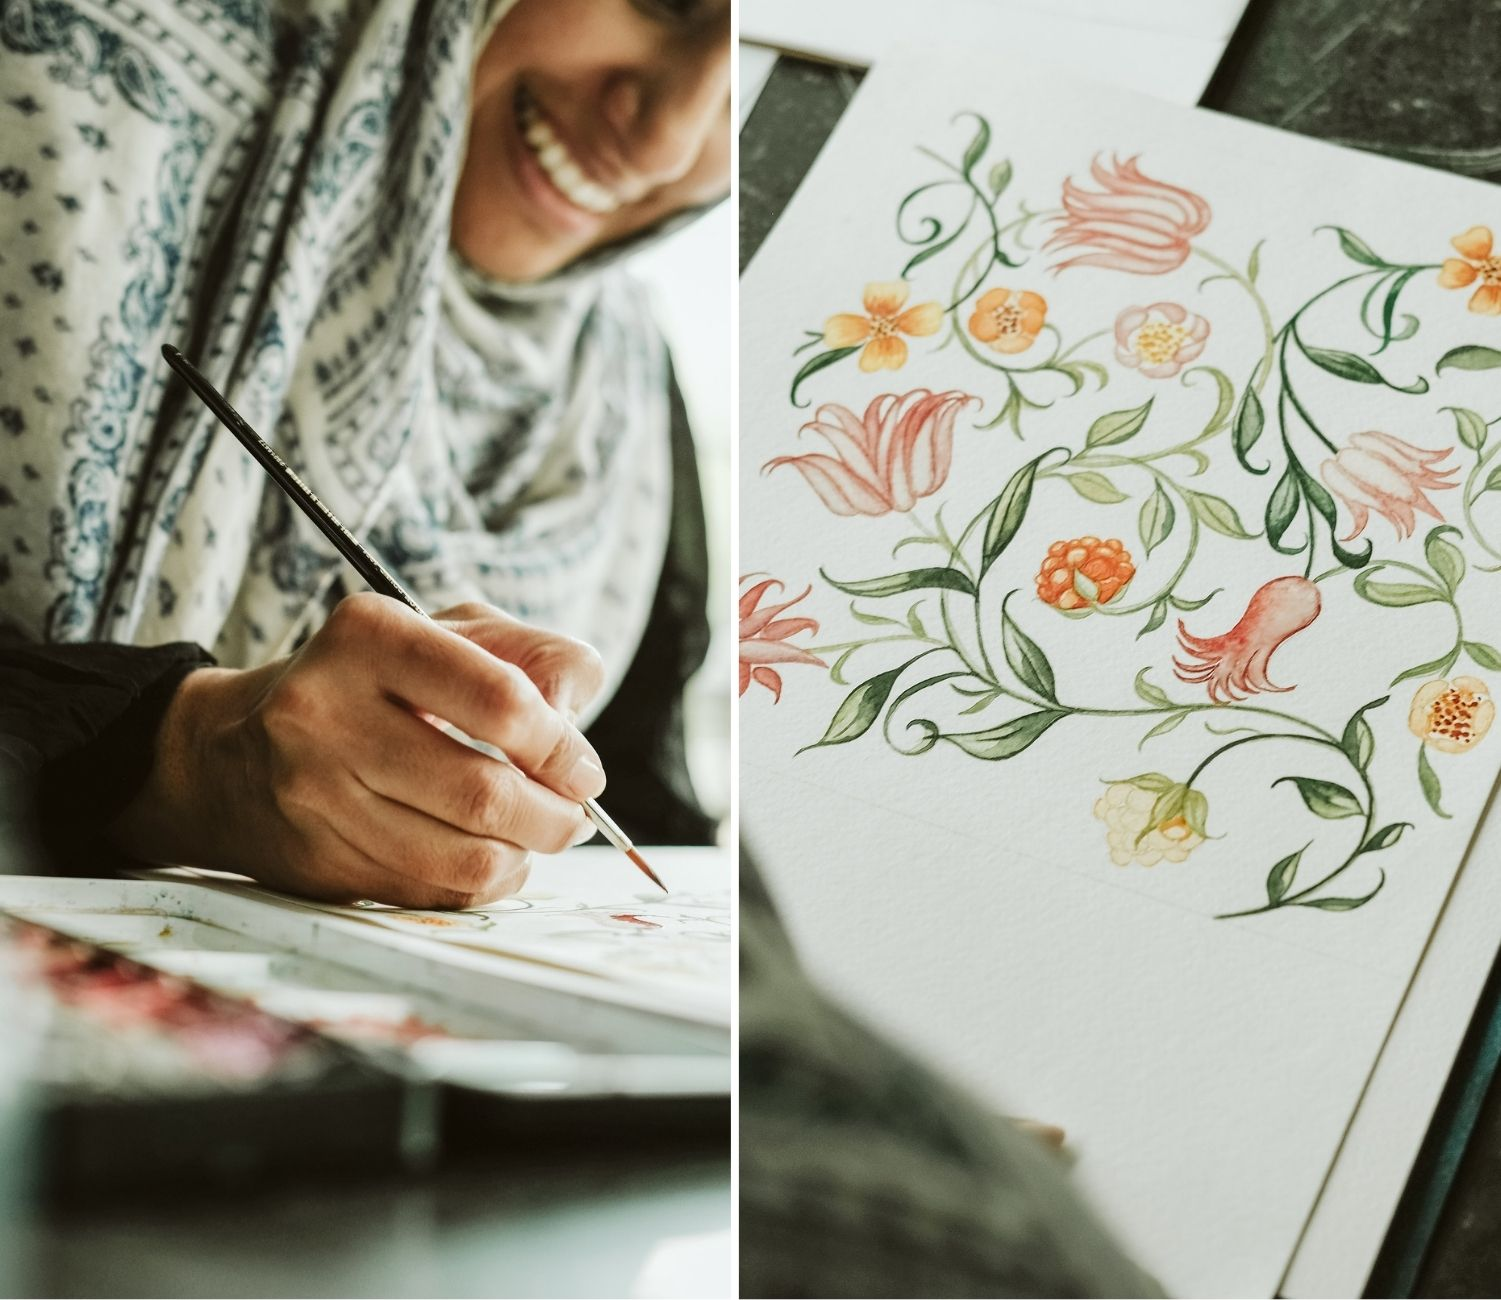 Consistency is key to business success as a wedding invitation designer and custom illustrator